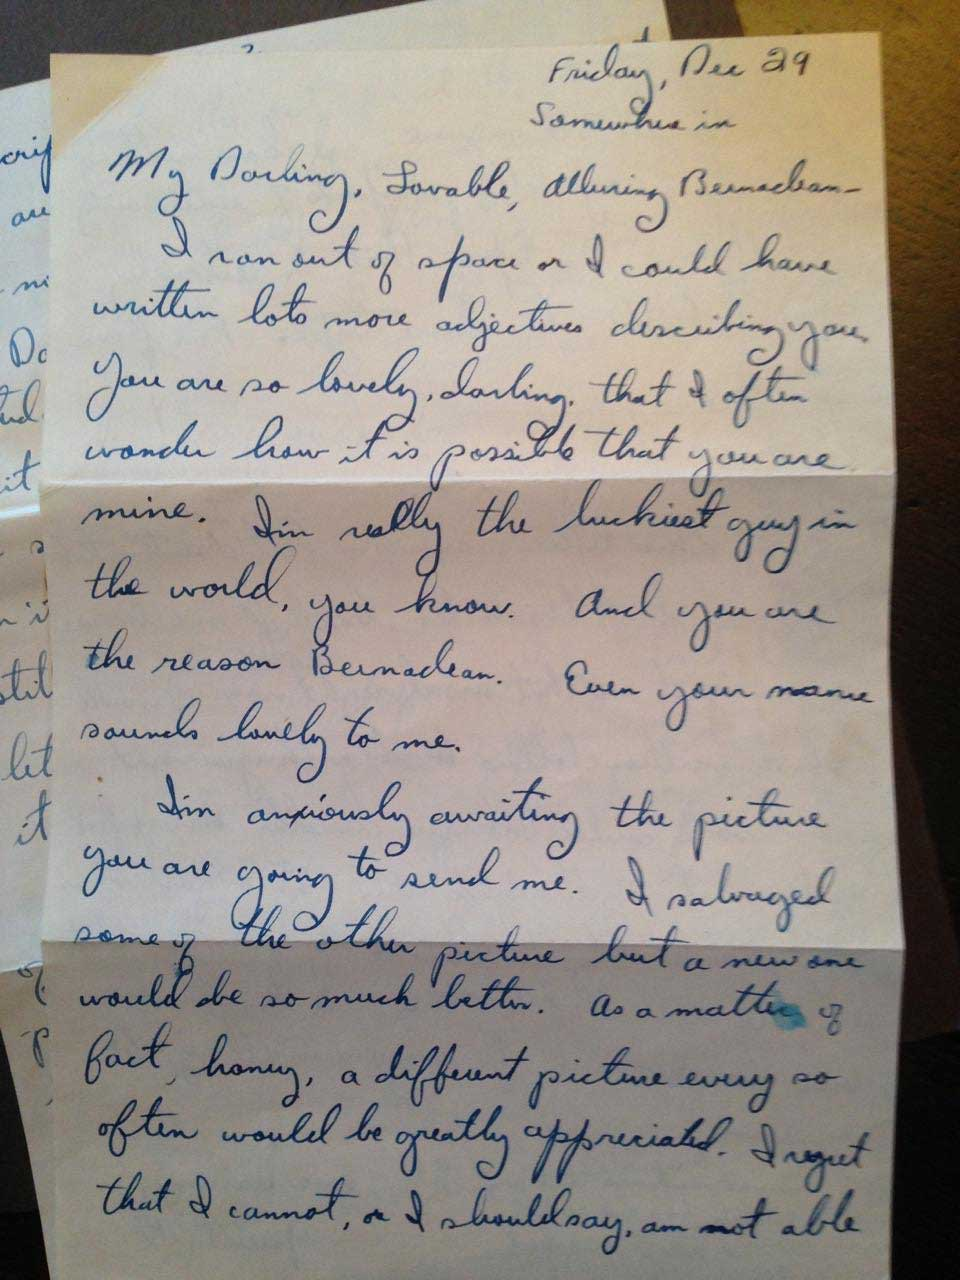 evergreen woman gets parents world war ii love letter 70 years later denver7 thedenverchannelcom